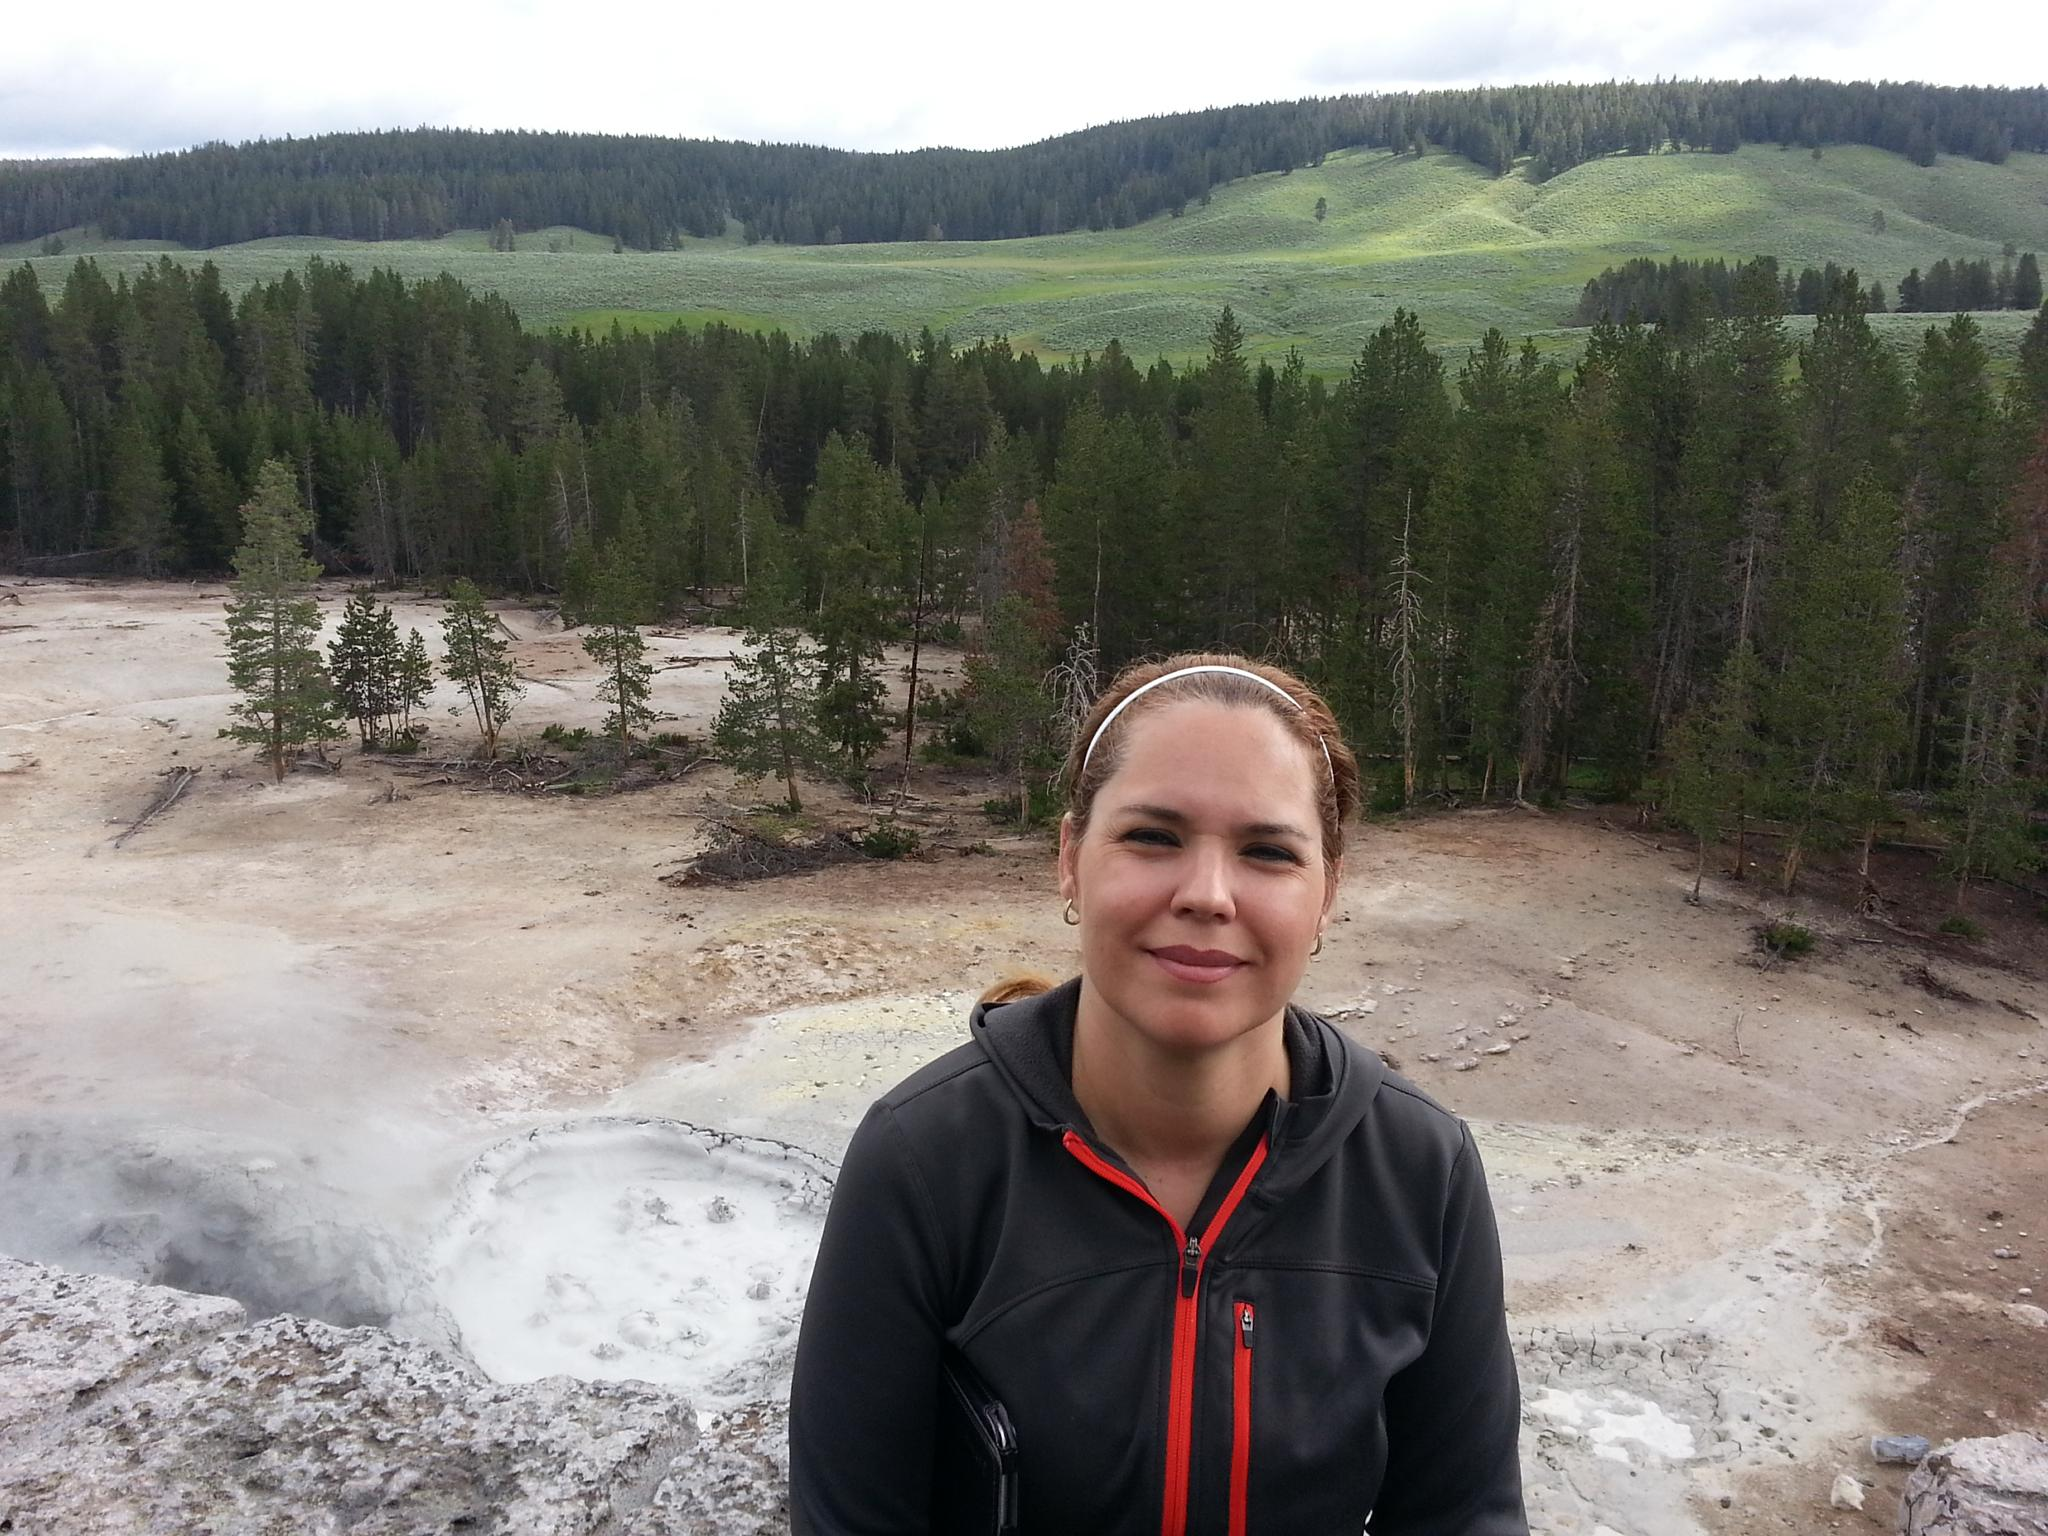 Landscape portrait at Yellowstone 1 by drcarlosesparza